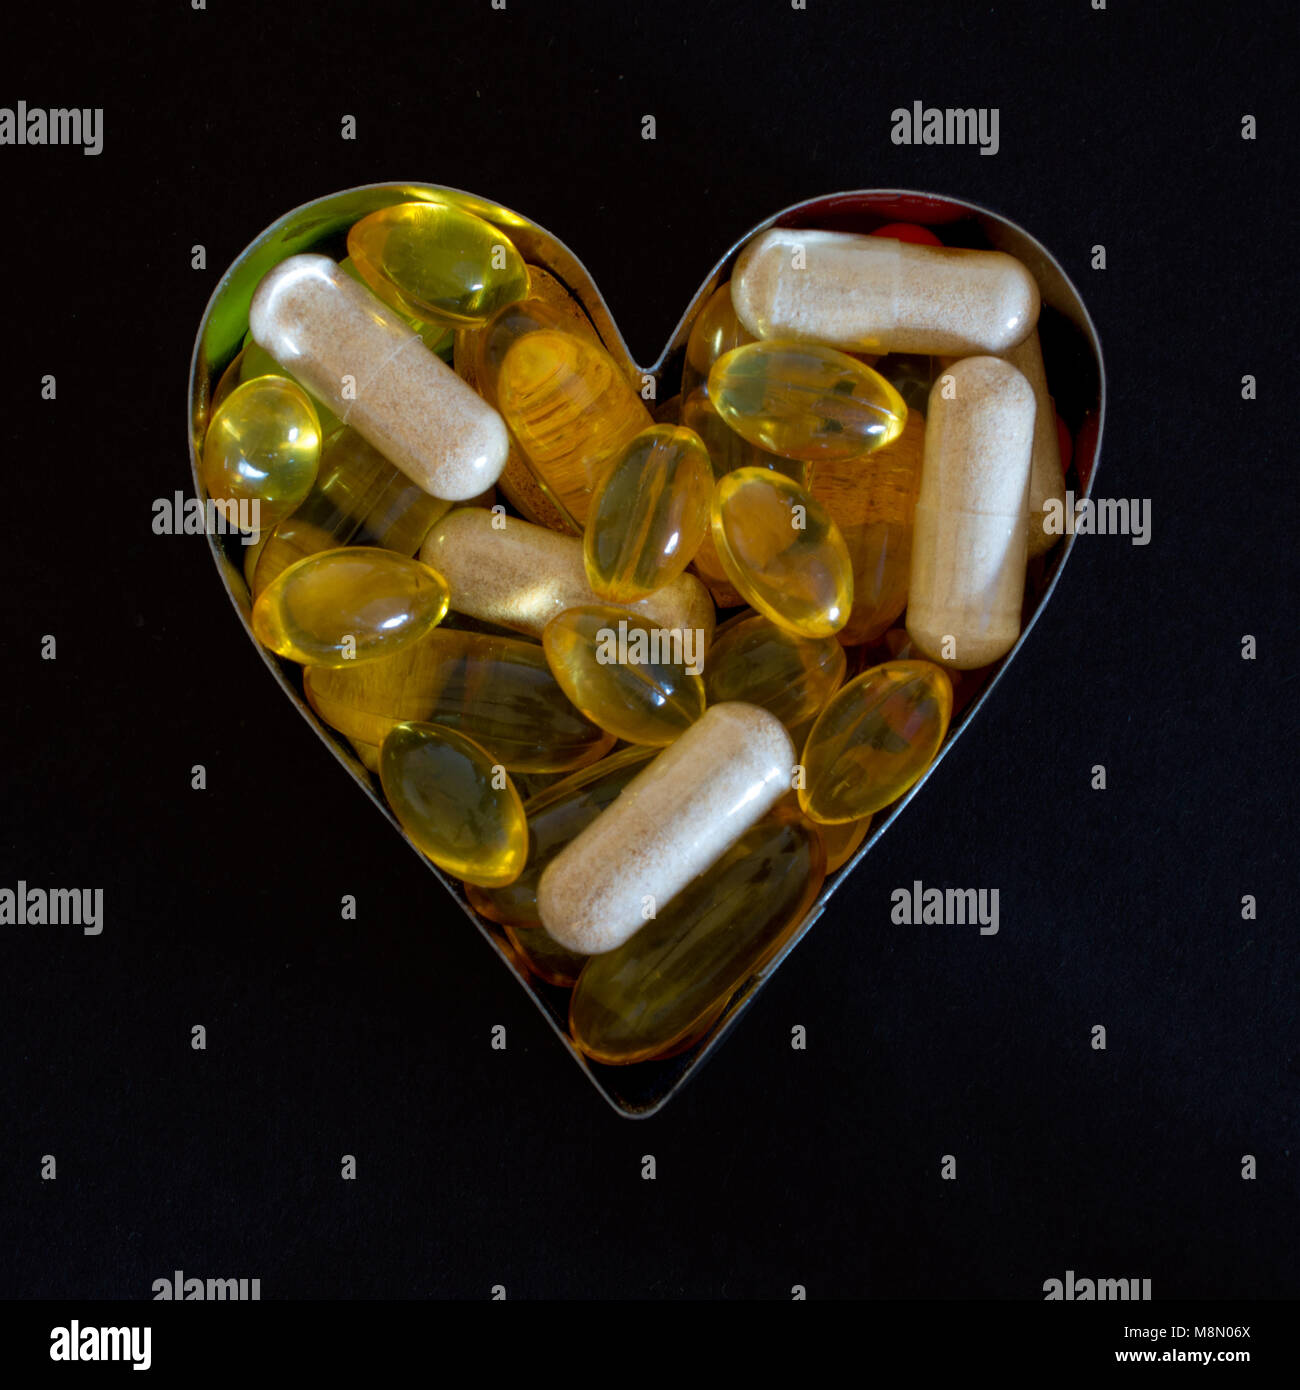 Dietary supplements in heart-shaped cookie cutter isolated against black background - Stock Image